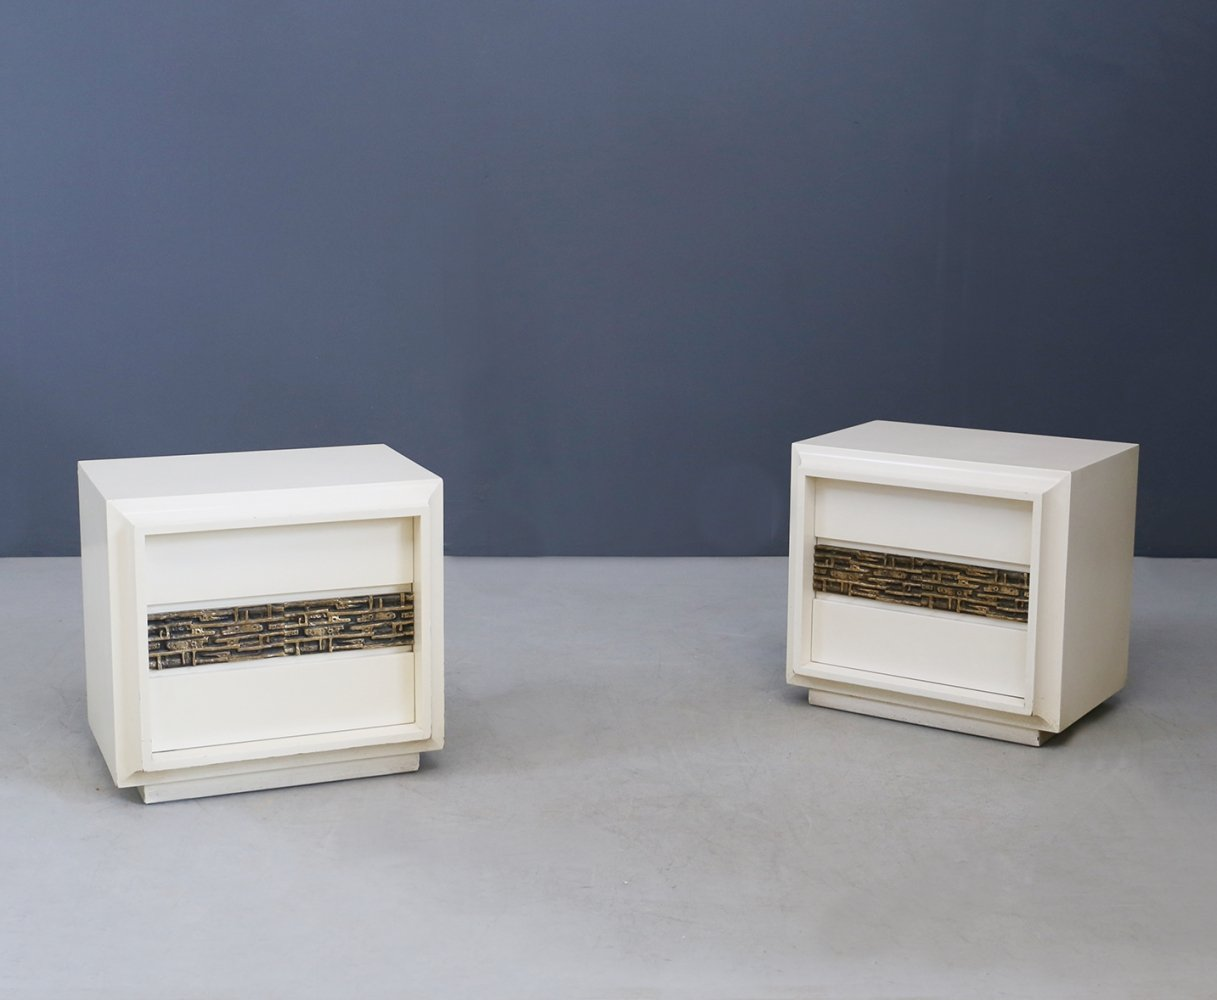 Pair of sculptural white wood & brass bedside cabinets by Luciano Frigerio, 1970s